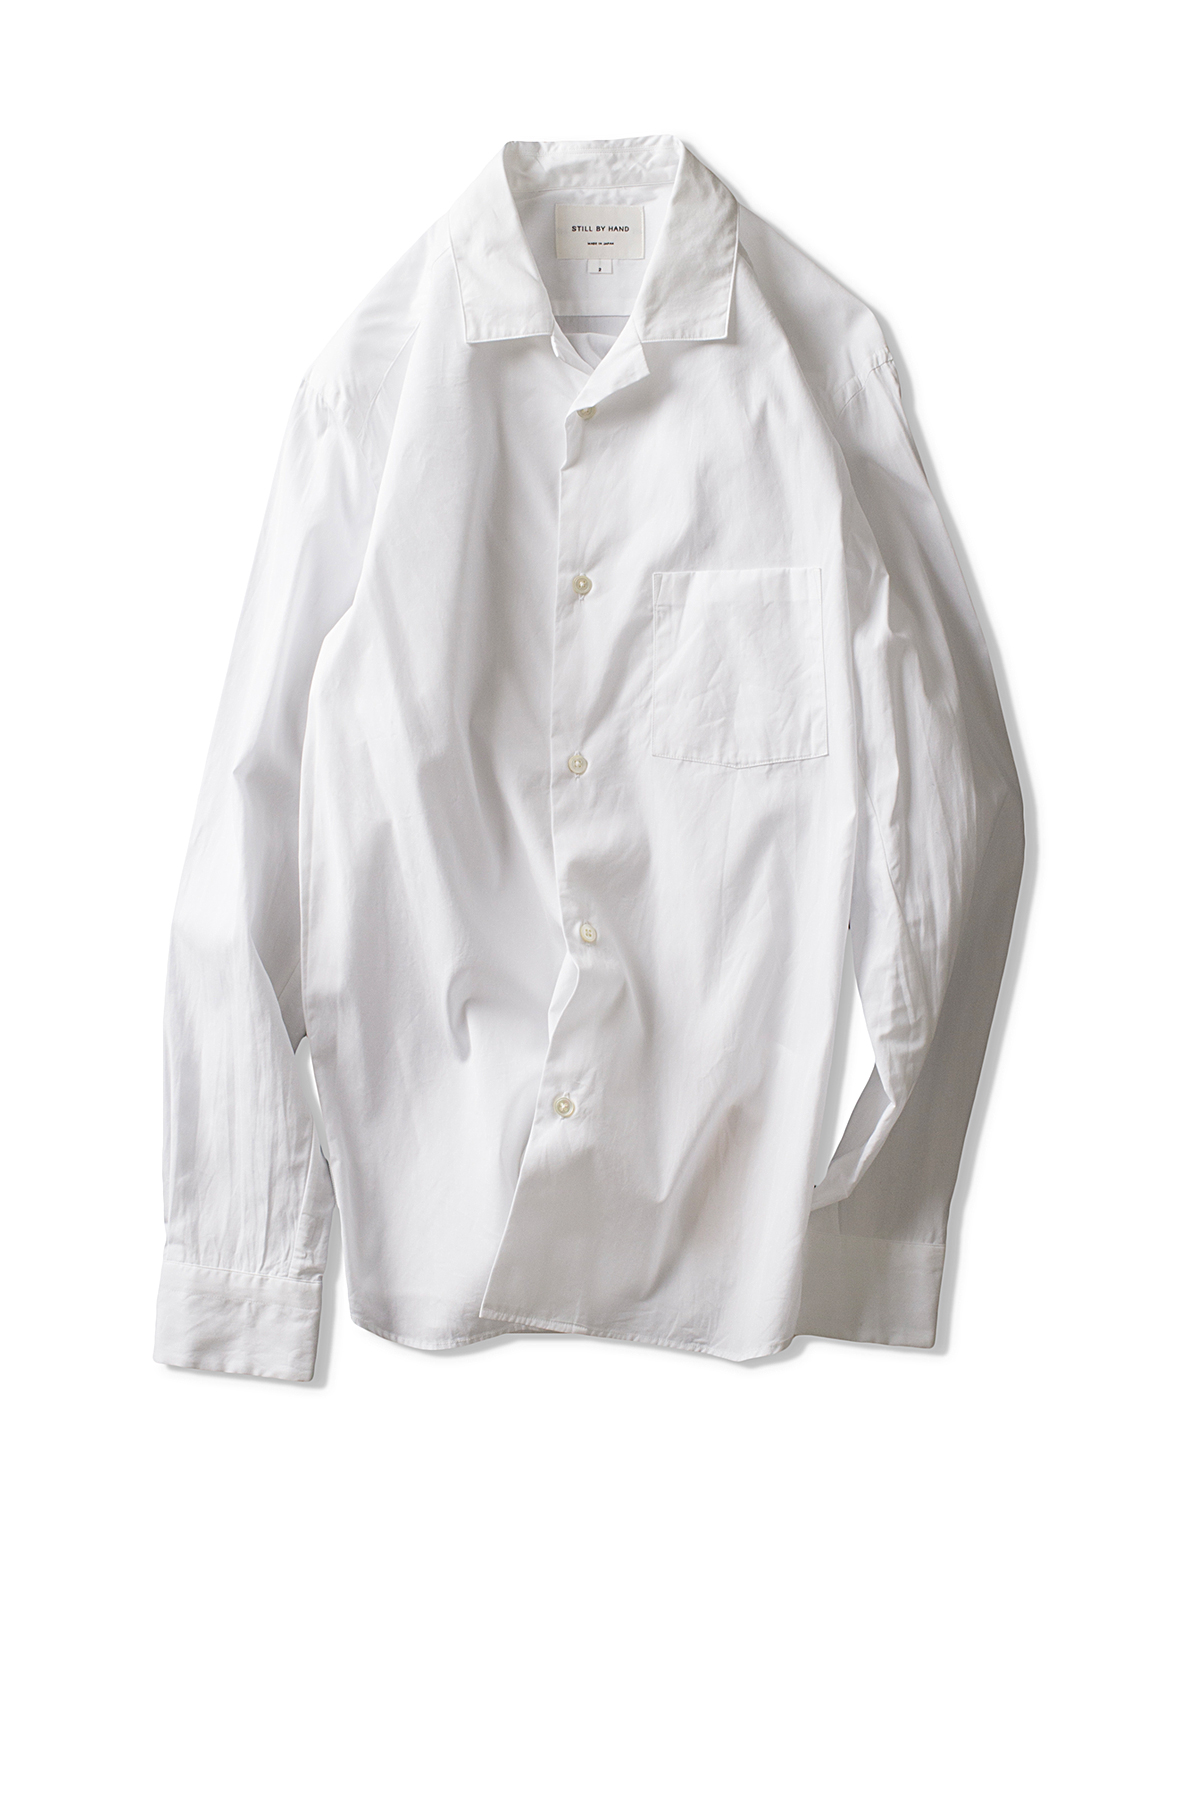 Still By Hand : Open Collar Shirts (White)